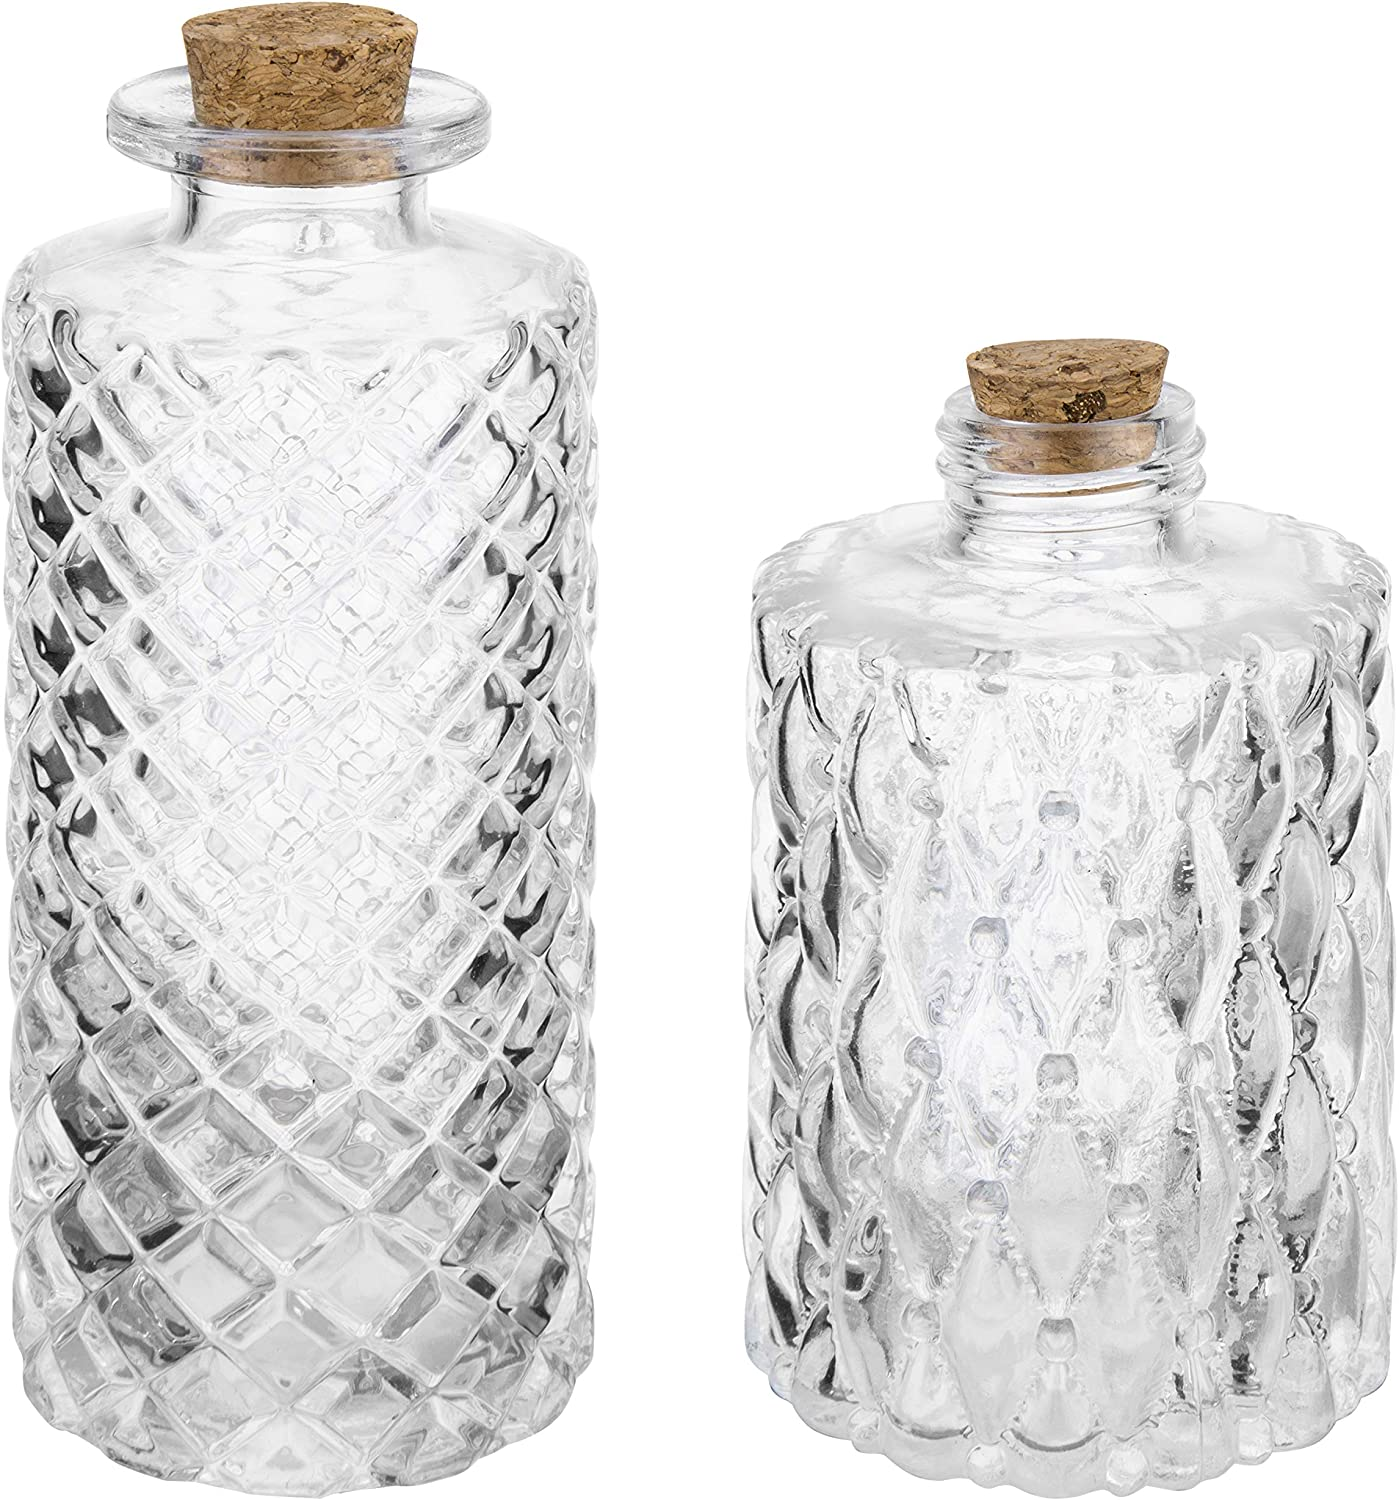 MyGift Vintage Embossed Clear Glass Bottles with Cork Lid, Set of 2